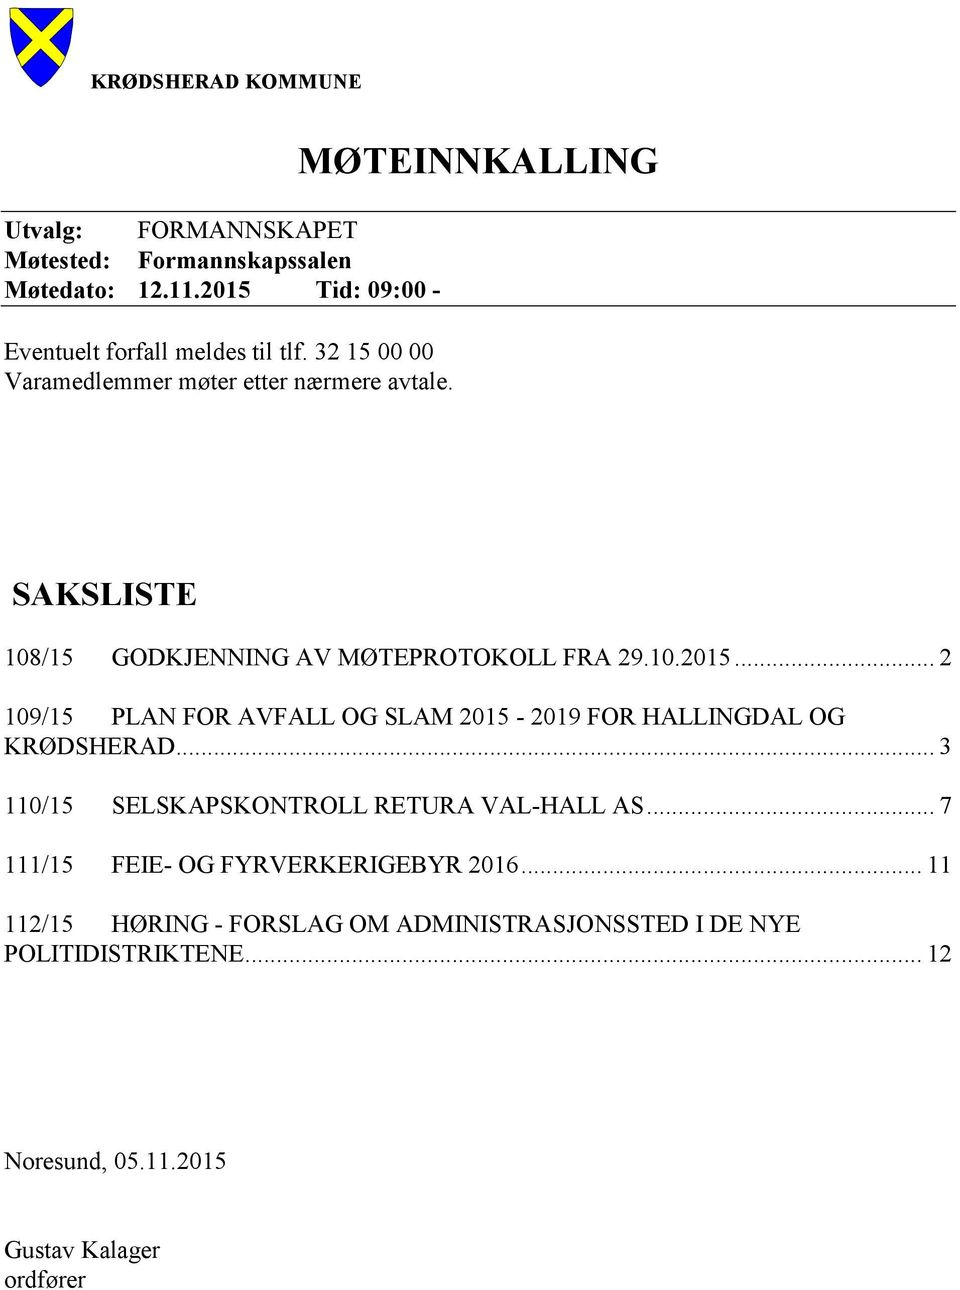 .. 2 109/15 PLAN FOR AVFALL OG SLAM 2015-2019 FOR HALLINGDAL OG KRØDSHERAD... 3 110/15 SELSKAPSKONTROLL RETURA VAL-HALL AS.